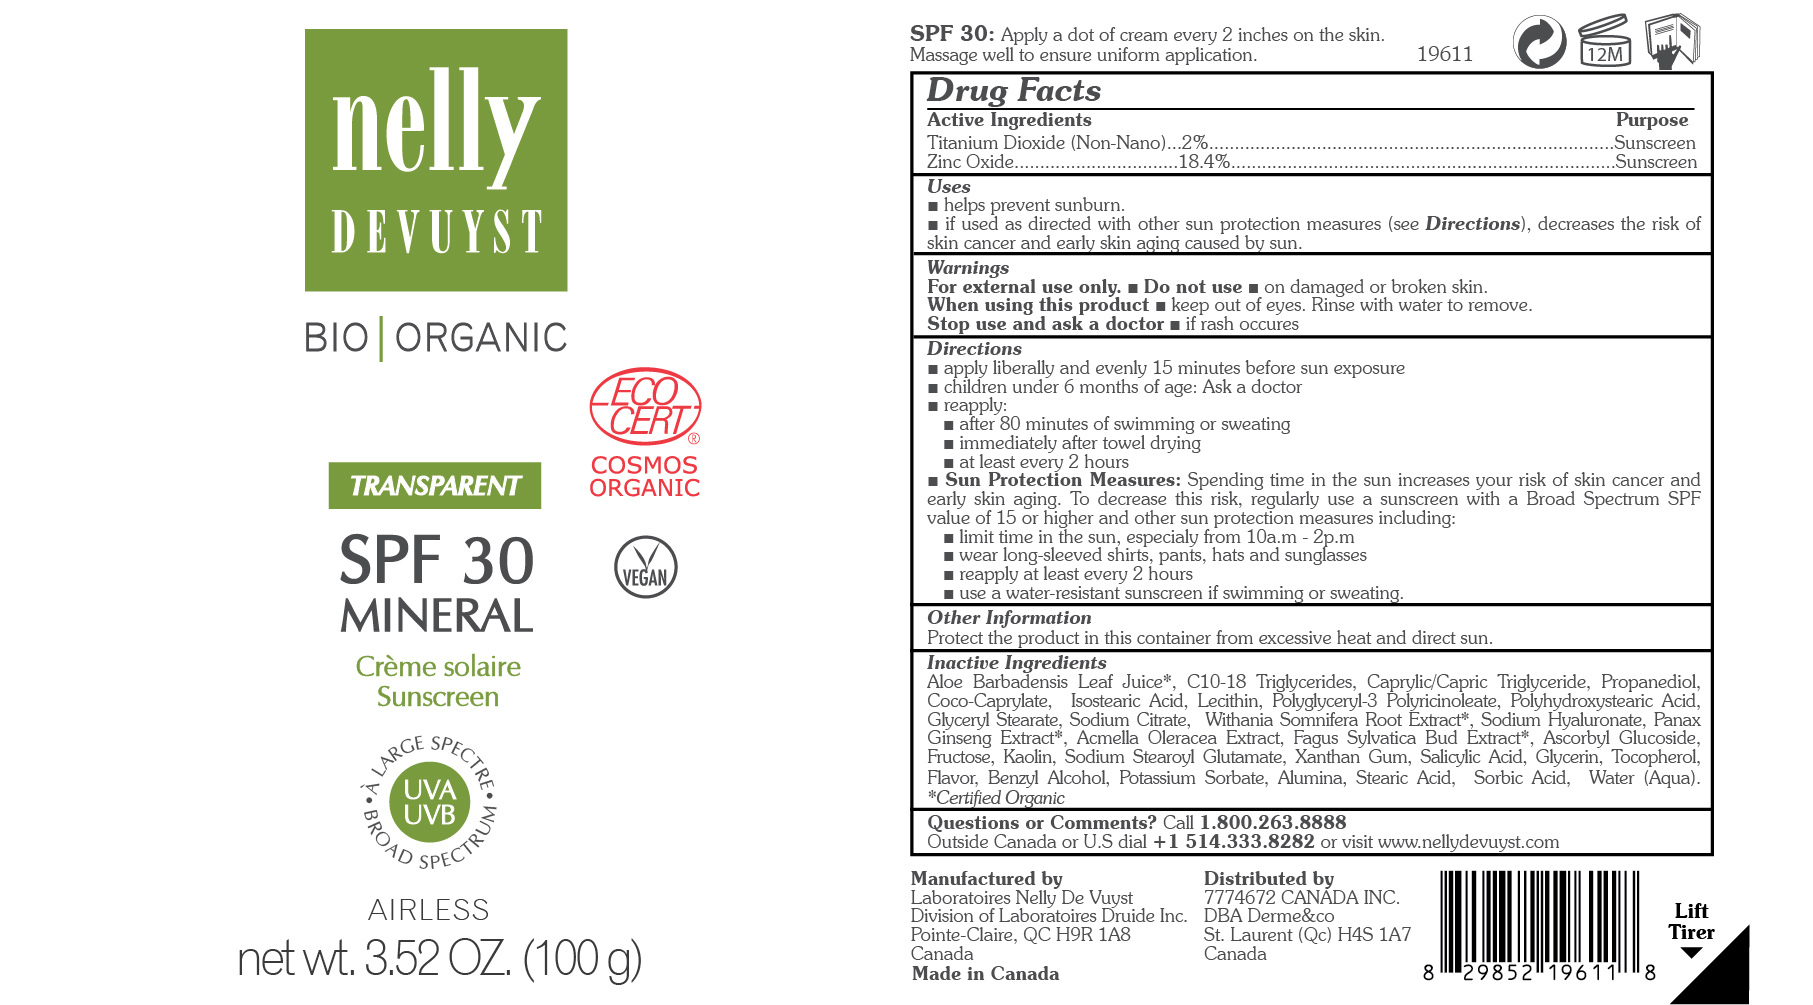 Nelly Devuyst Transparent Mineral Sunscreen